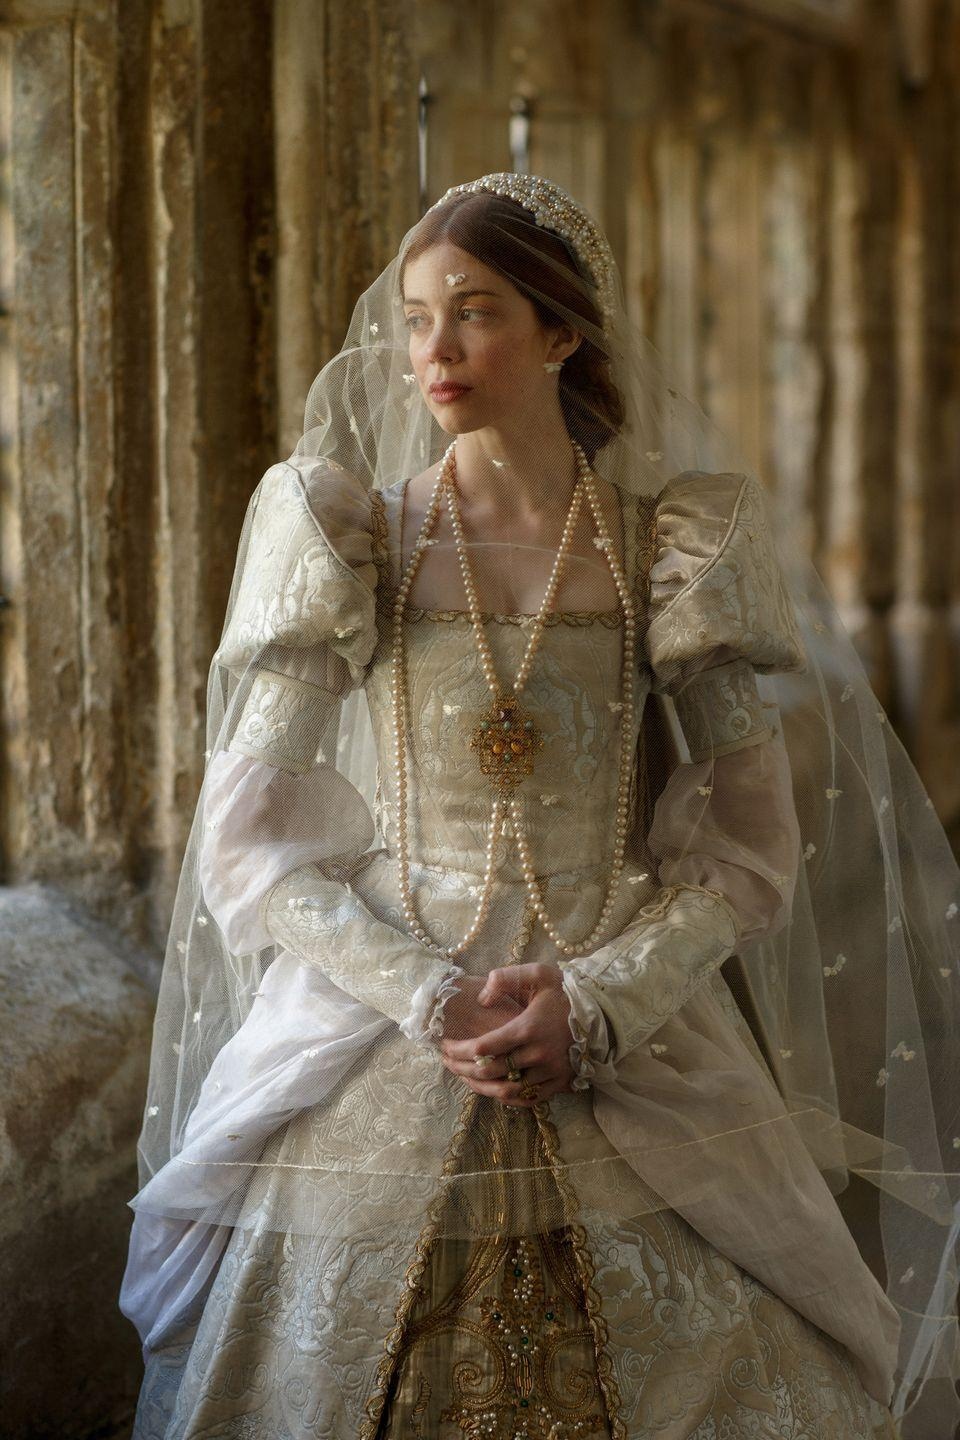 <p>The hit Starz series is set to return for a second season on October 11 and is sure to be dripping in Tudor-era glamour. However, the show will remain a limited series, meaning these eight episodes will conclude the story of Catherine of Aragorn. Part II will focus on her iconic love affair with King Henry VIII, and fans of <em>Downtown Abbey </em>will love the addition of Laura Carmichael (Lady Edith Crawley) to the cast.</p>